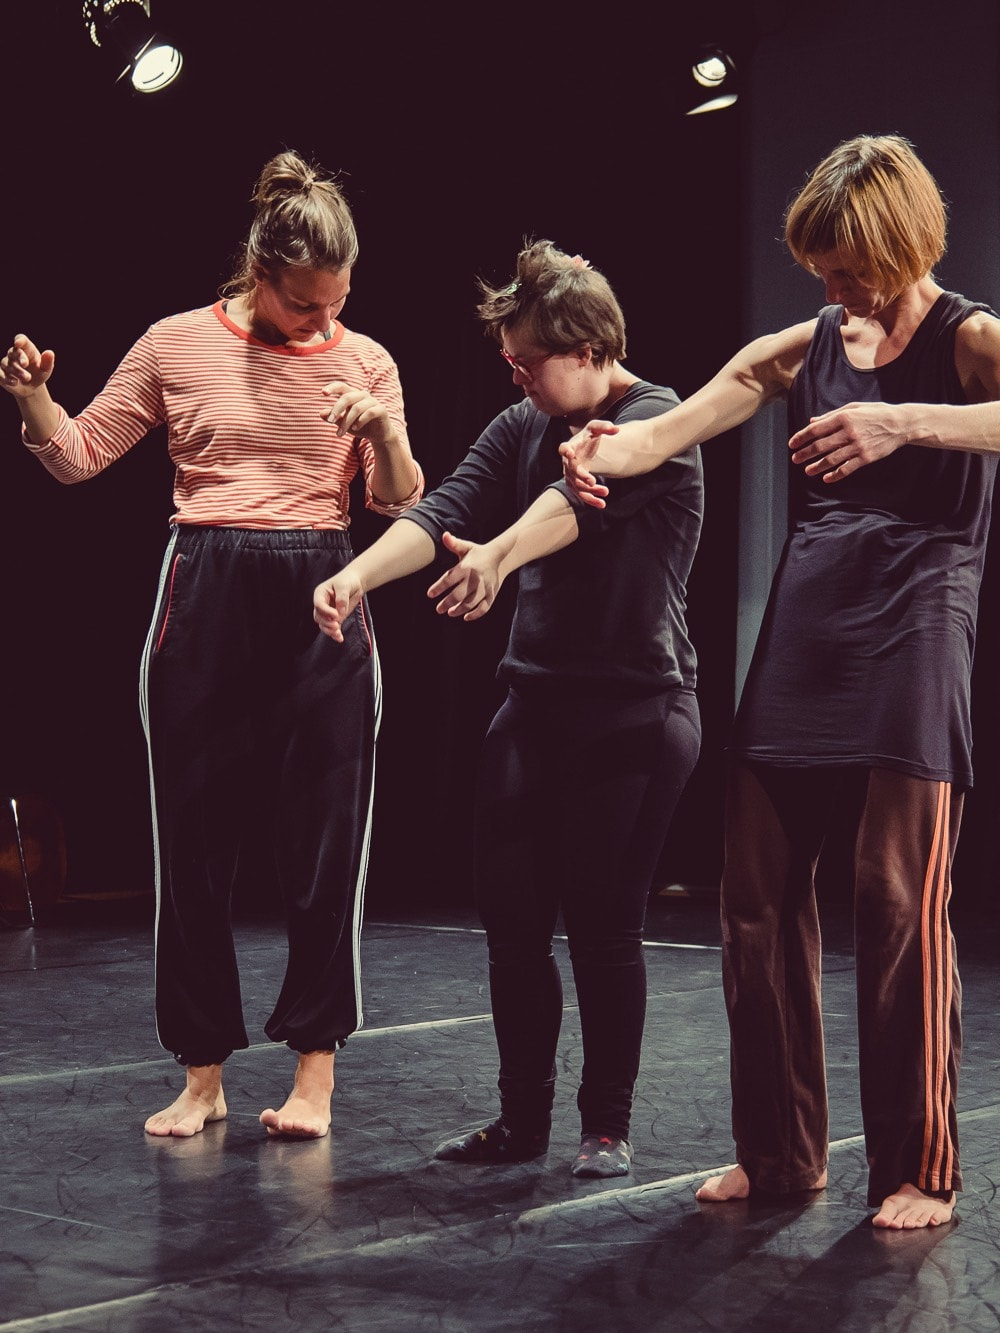 Dancer Anna Kempin, Christina Bischof and Rica Matthes dancing contemporary dance by standing and looking at their own bodies.